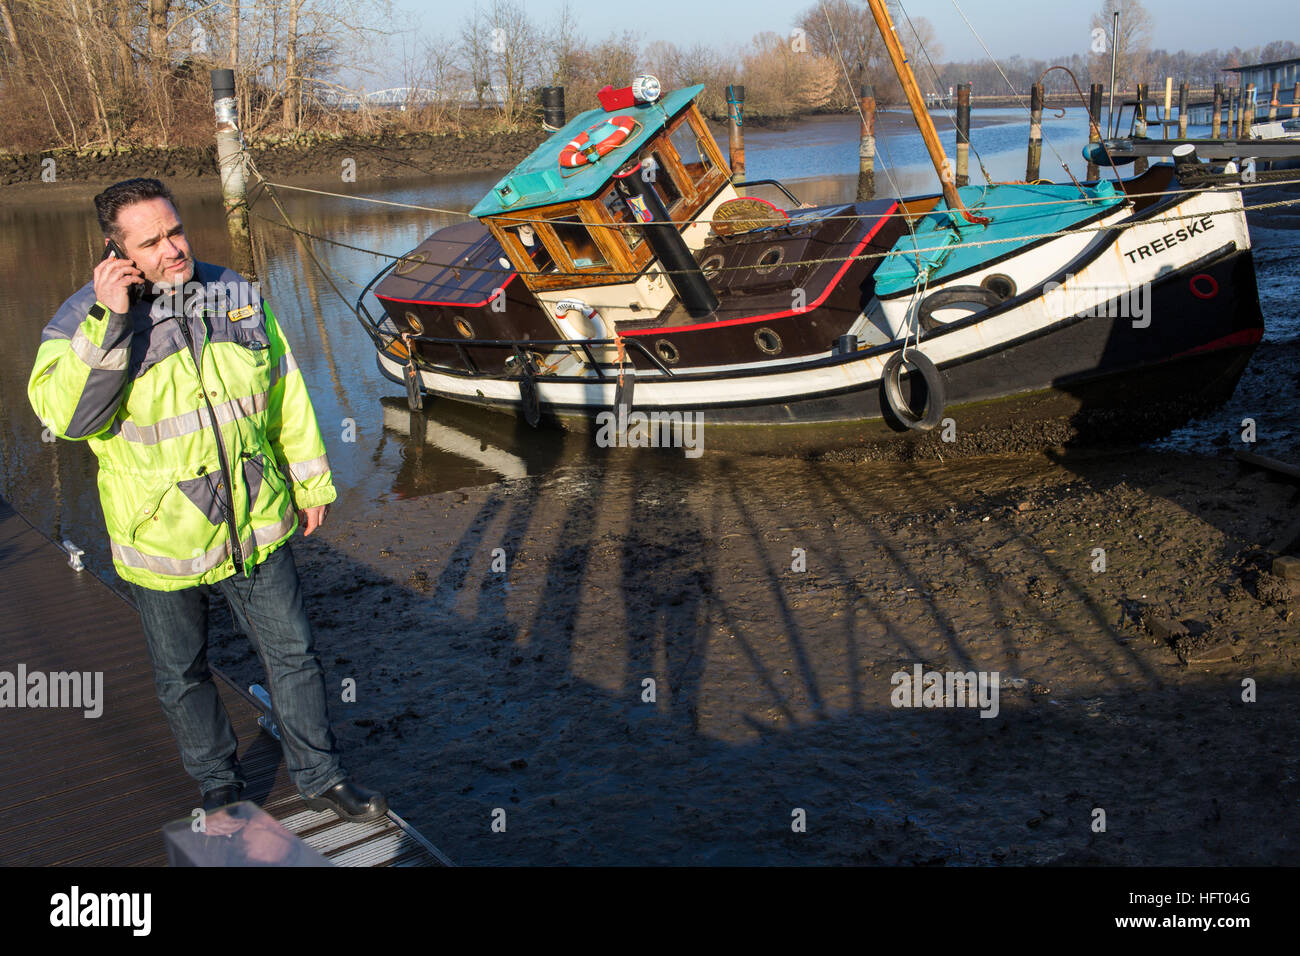 Water level of the river Maas dropped three meters due to an dysfunctional weir. - Stock Image